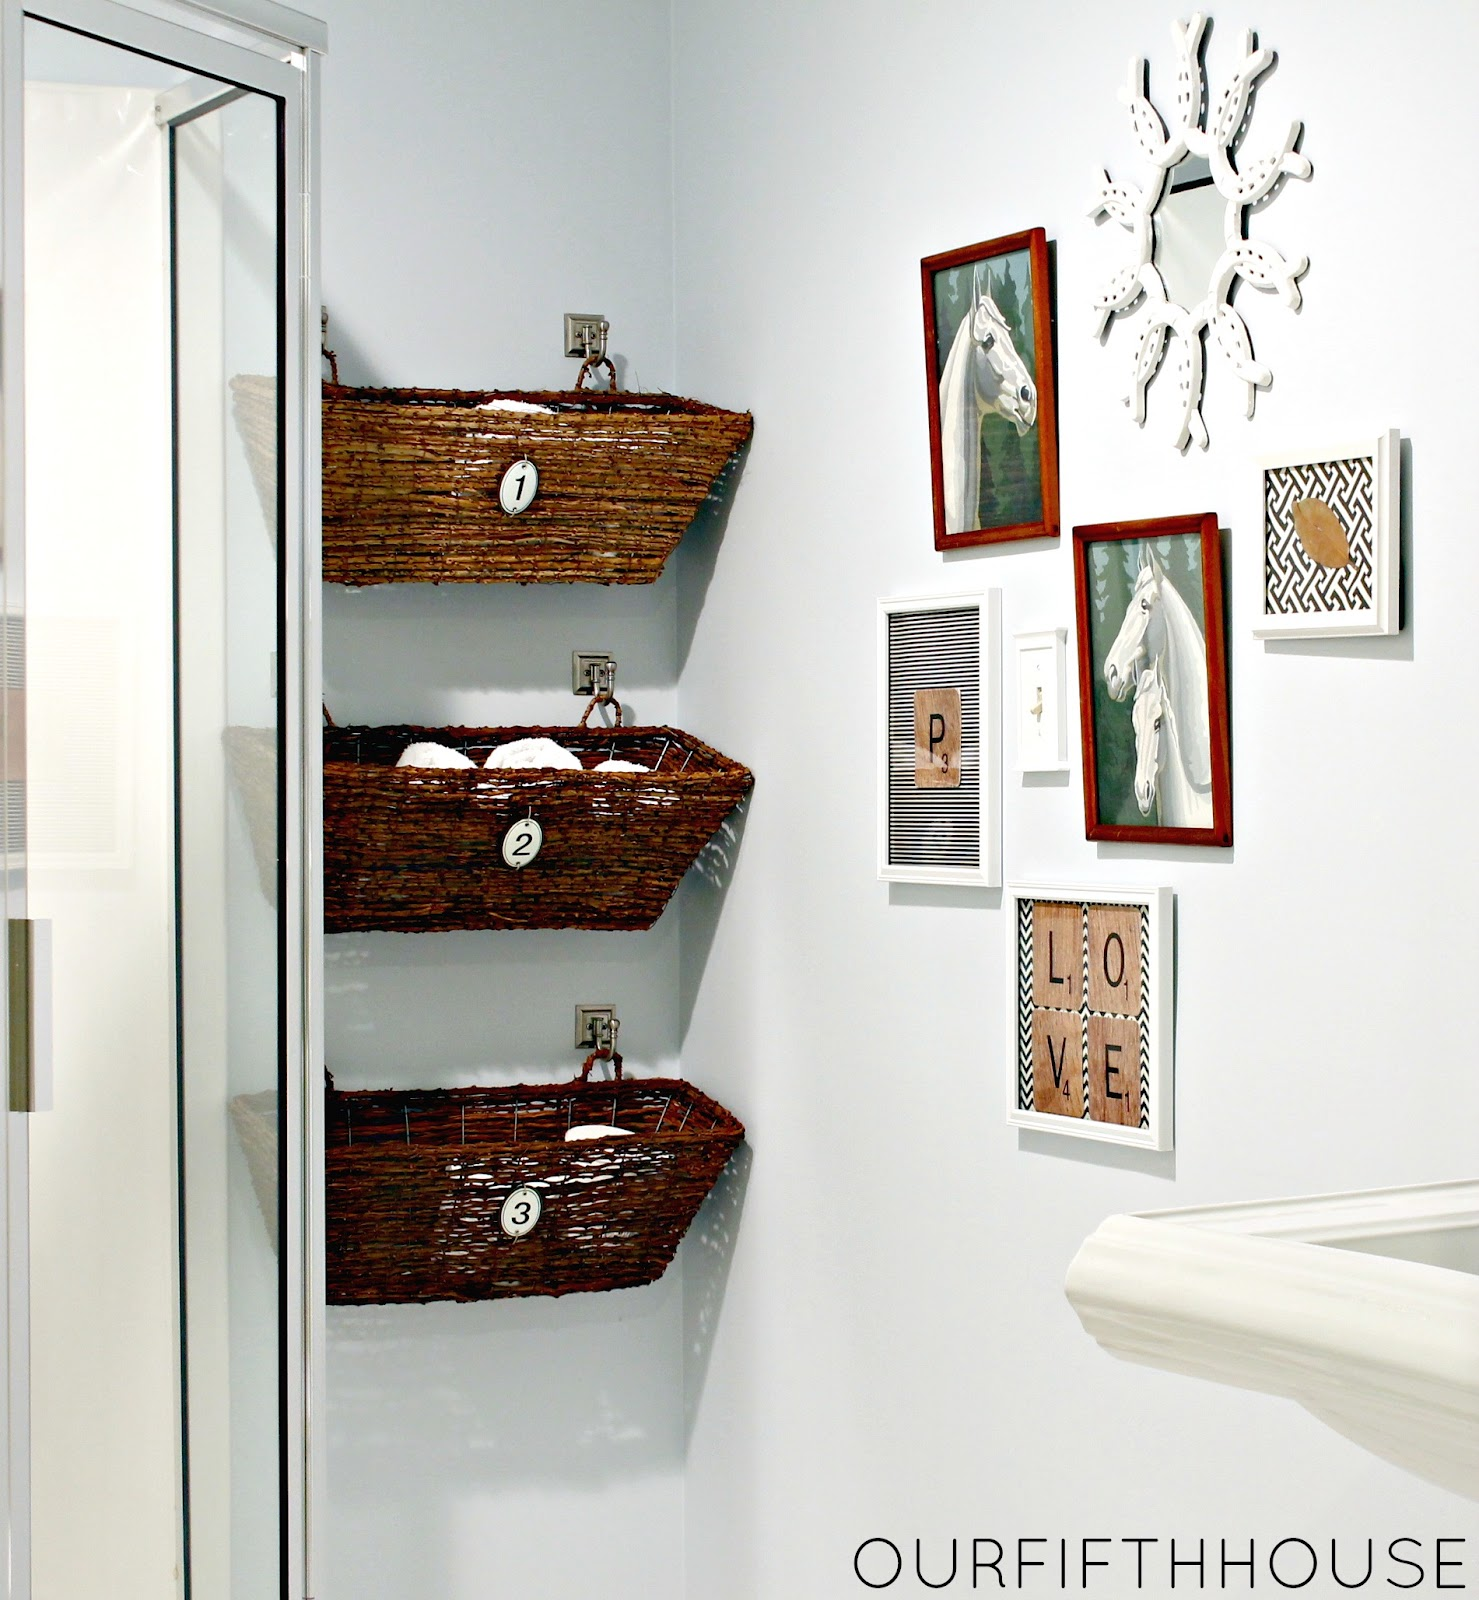 15 small bathroom storage ideas wall storage solutions and shelves for bathrooms - Diy Small Bathroom Storage